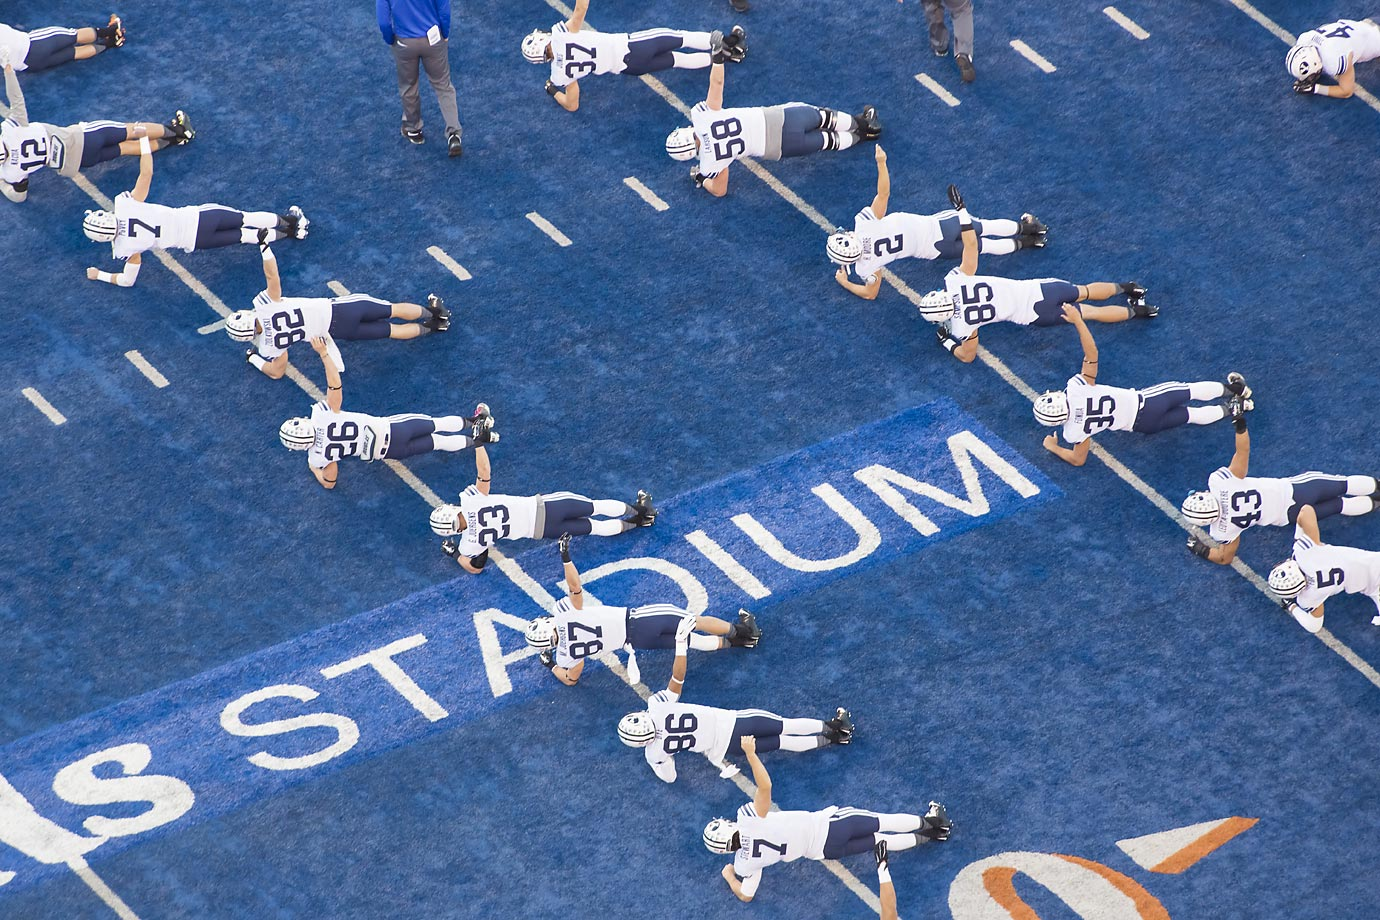 BYU players warm up before their game against Boise State.  Boise State won 55-30.